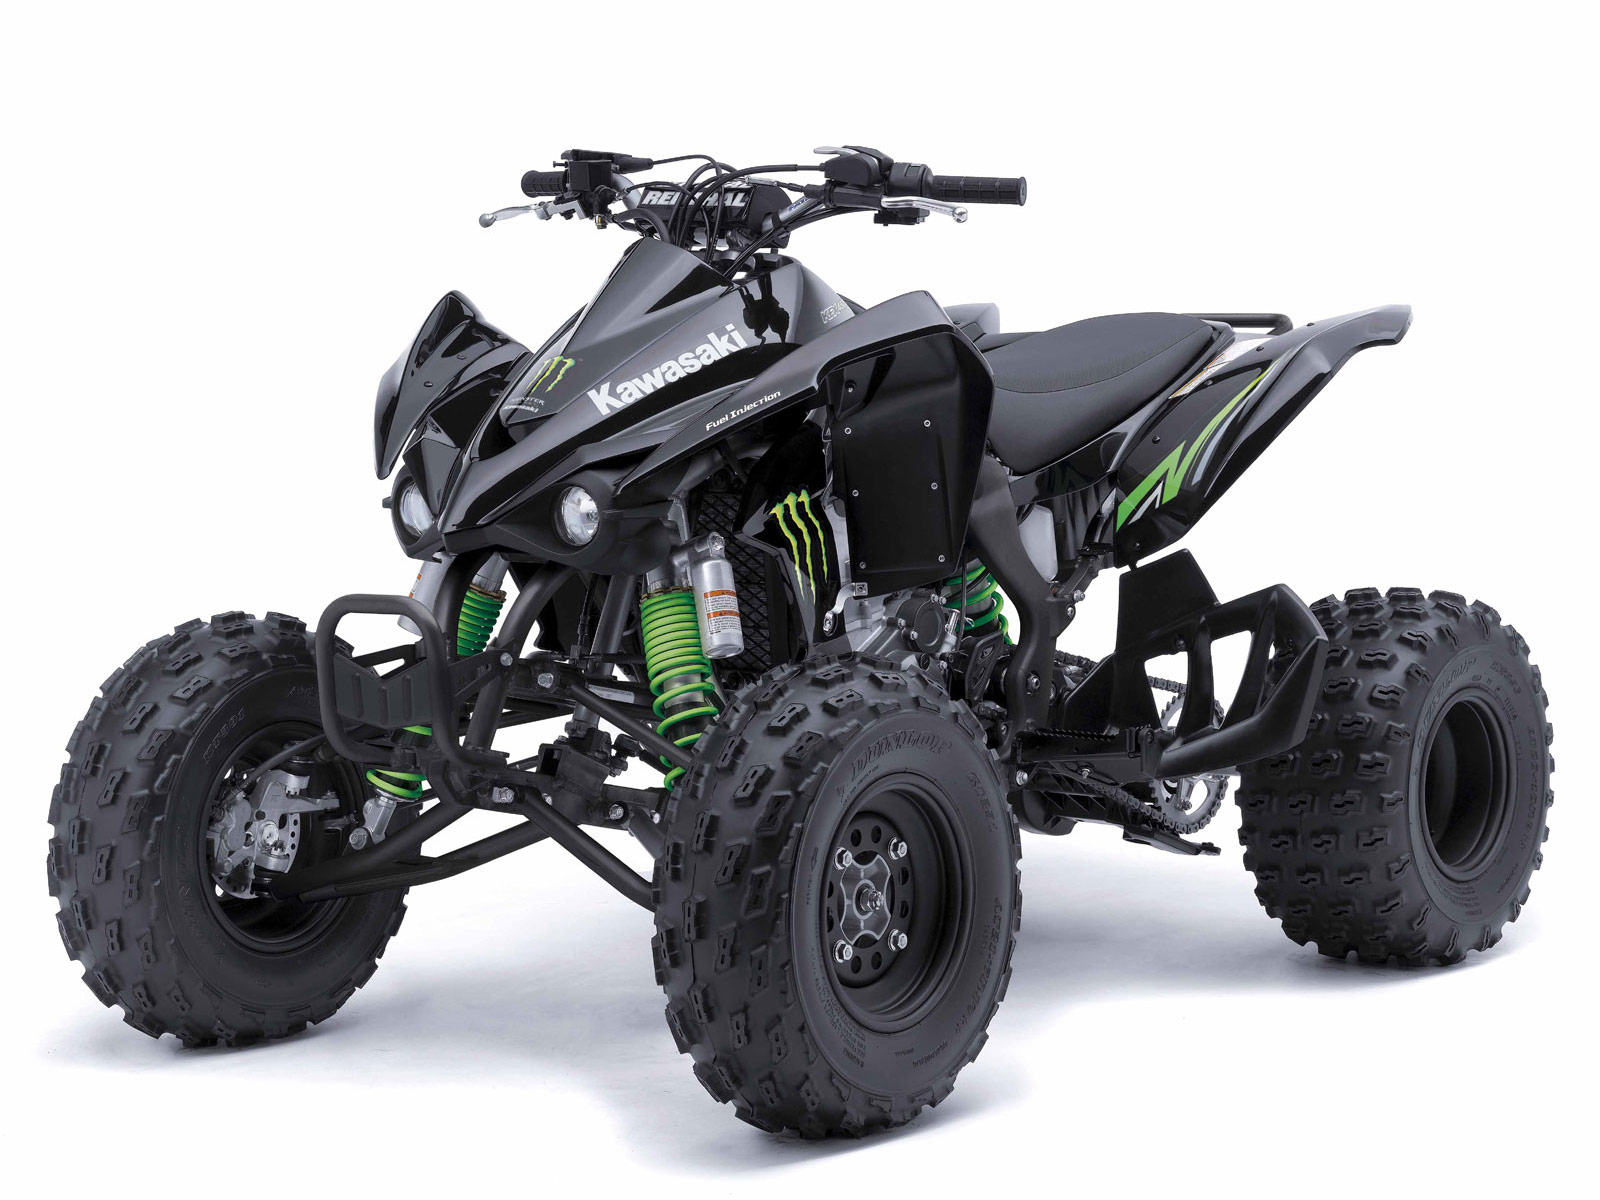 2009 kfx 450r monster energy kawasaki atv wallpapers. Black Bedroom Furniture Sets. Home Design Ideas